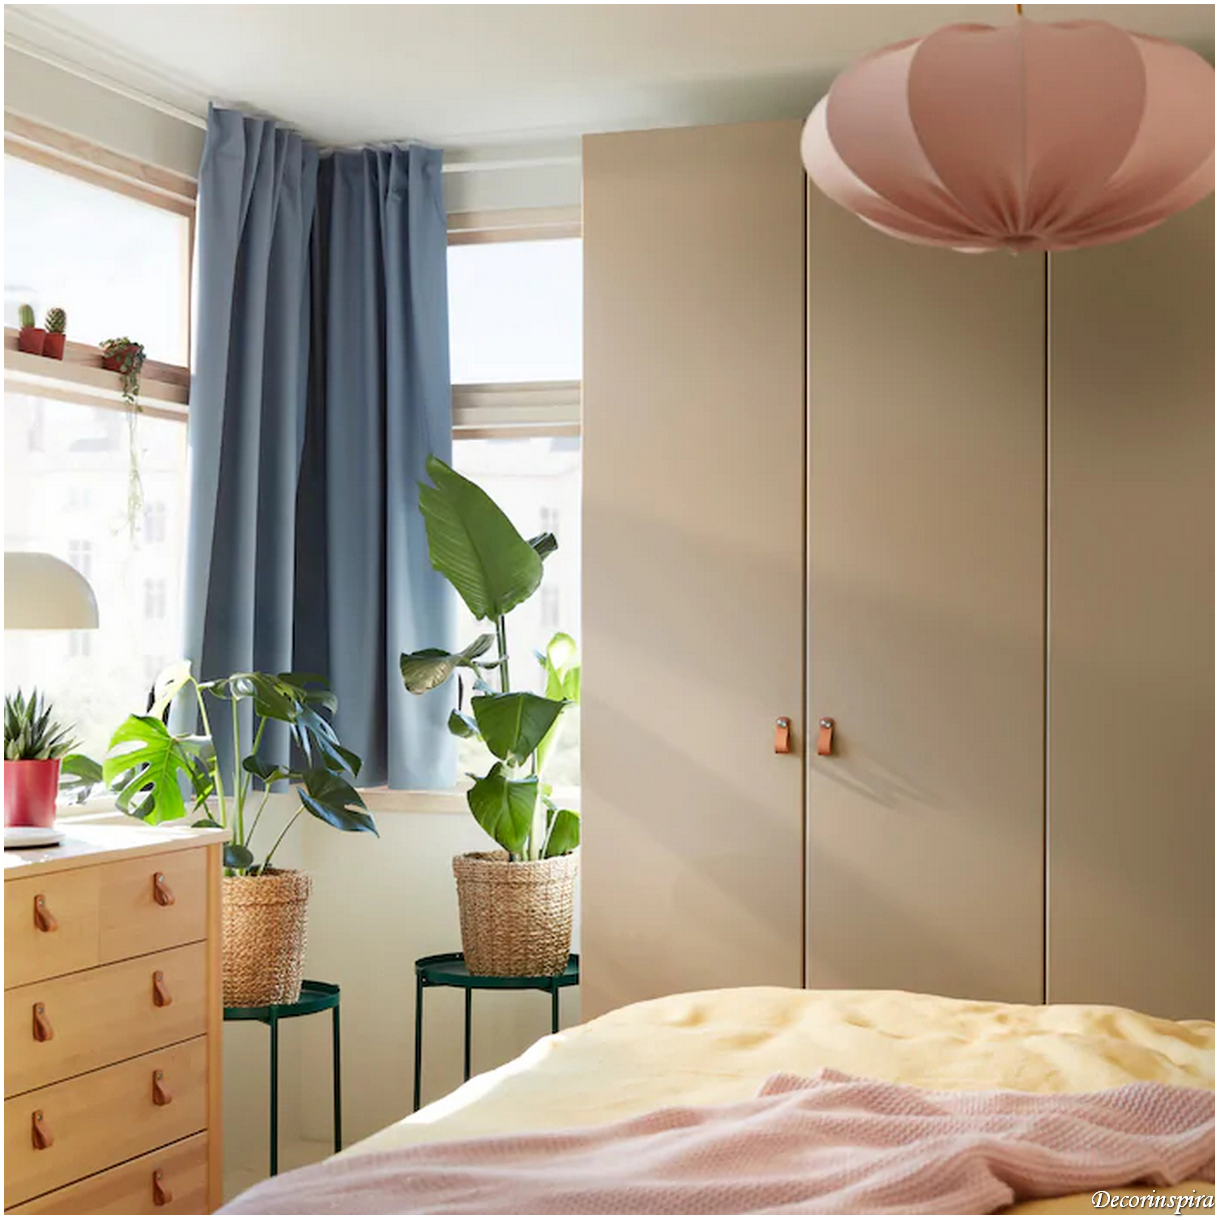 How A Spacious Bedroom With Wooden Furniture Creates An Eco-Friendly Bedroom